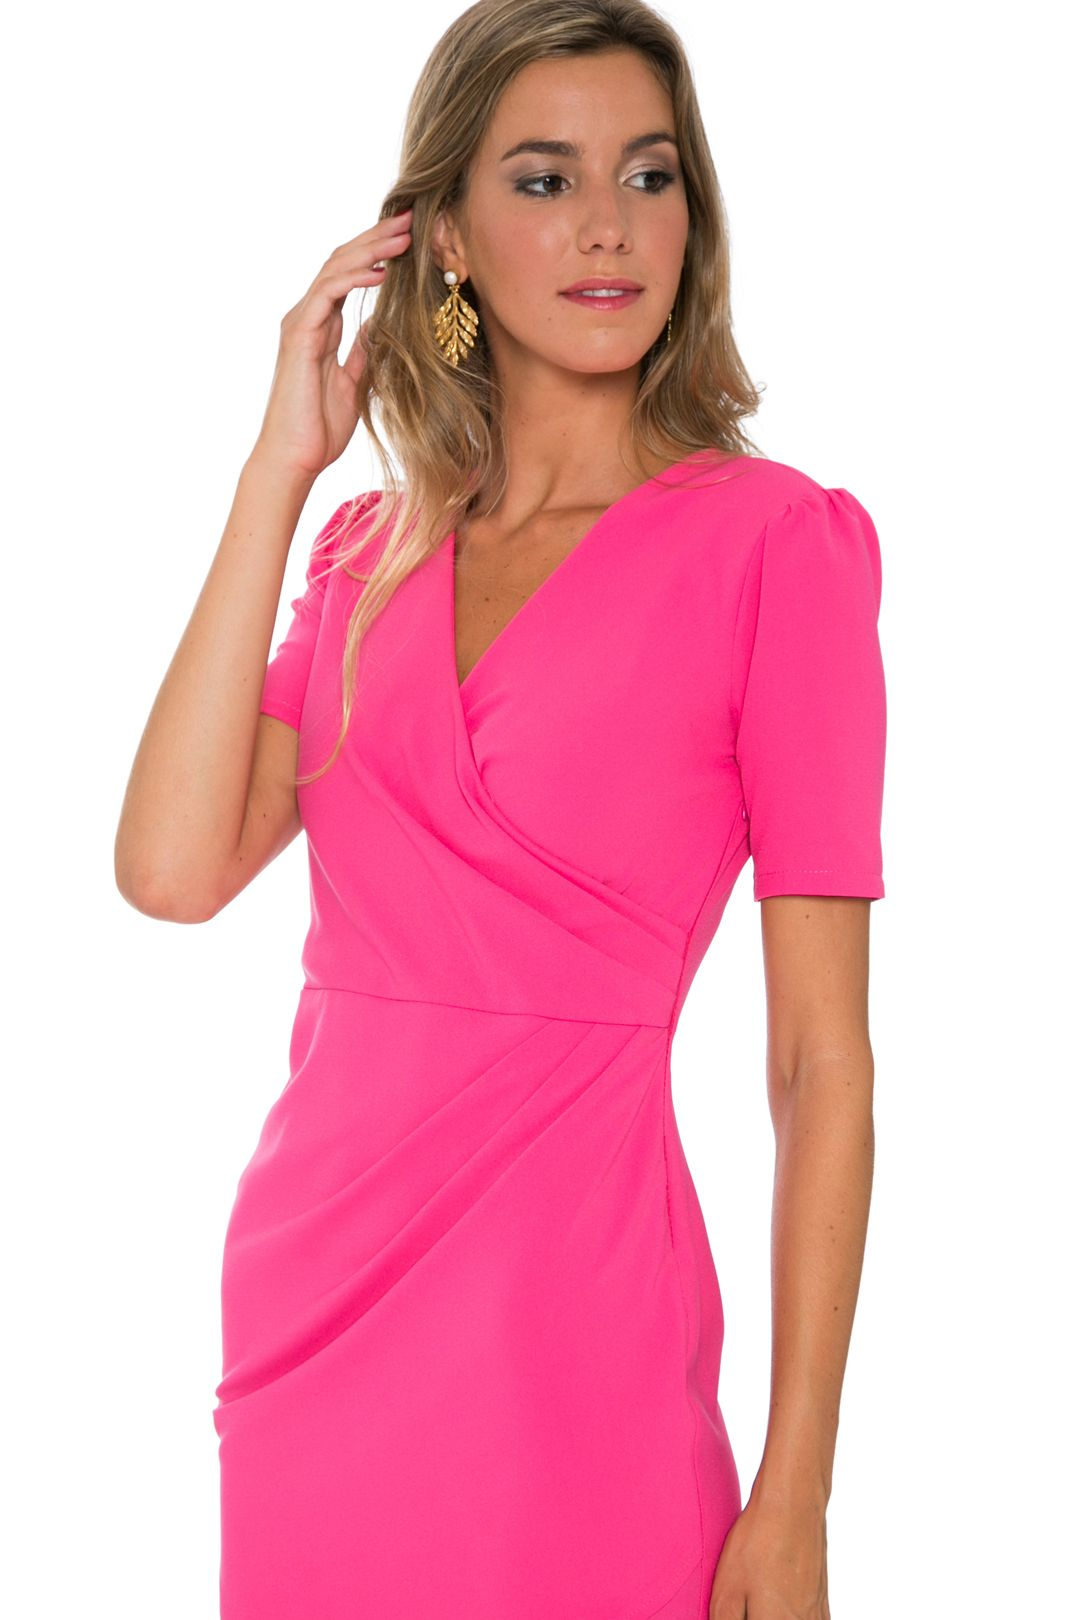 Vestido Crossing Fucsia | P!nk, pInK, Pink, PiNk, and pink rocks my ...